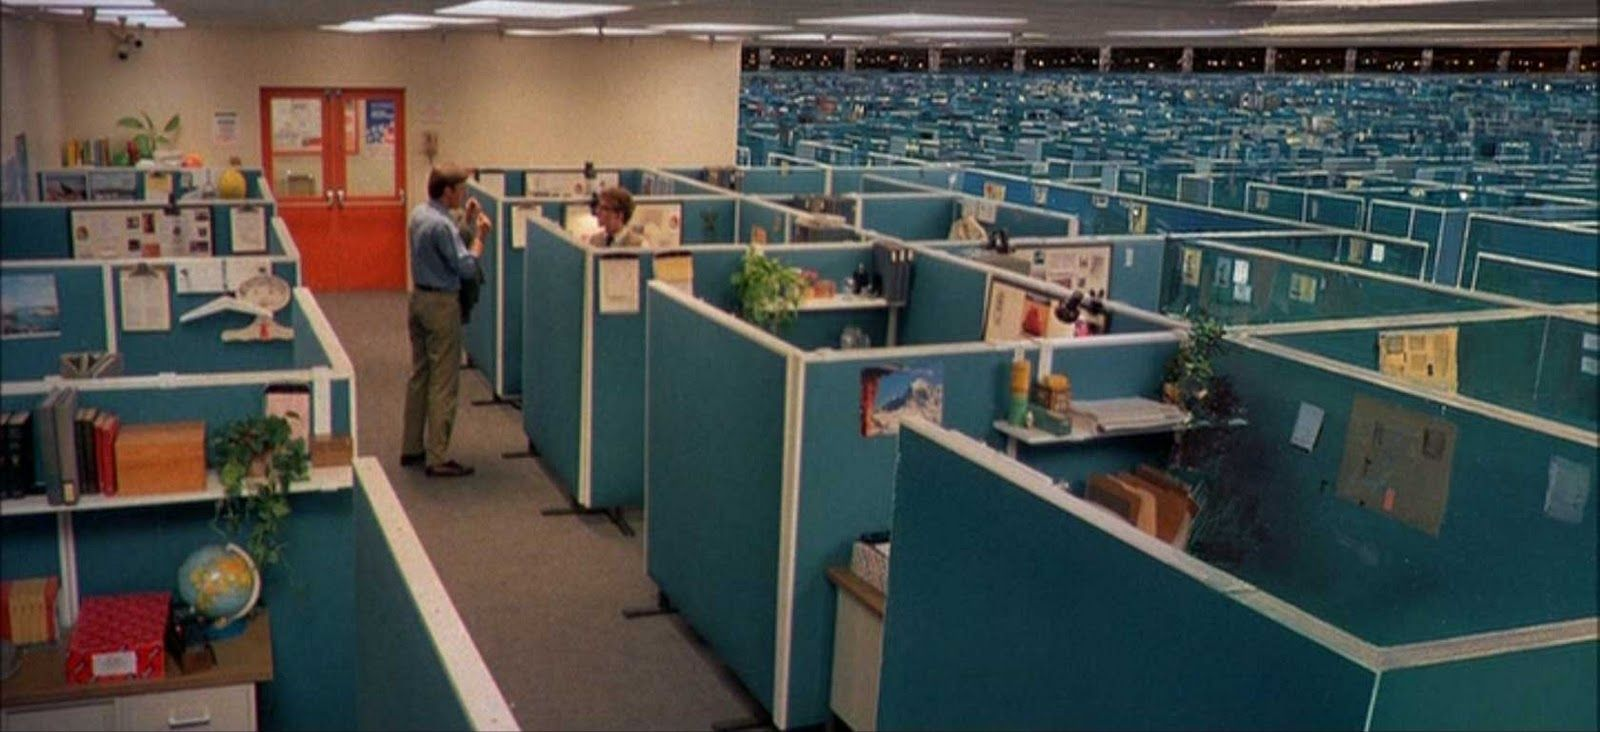 images about office on pinterest cubicles and modern cubicle